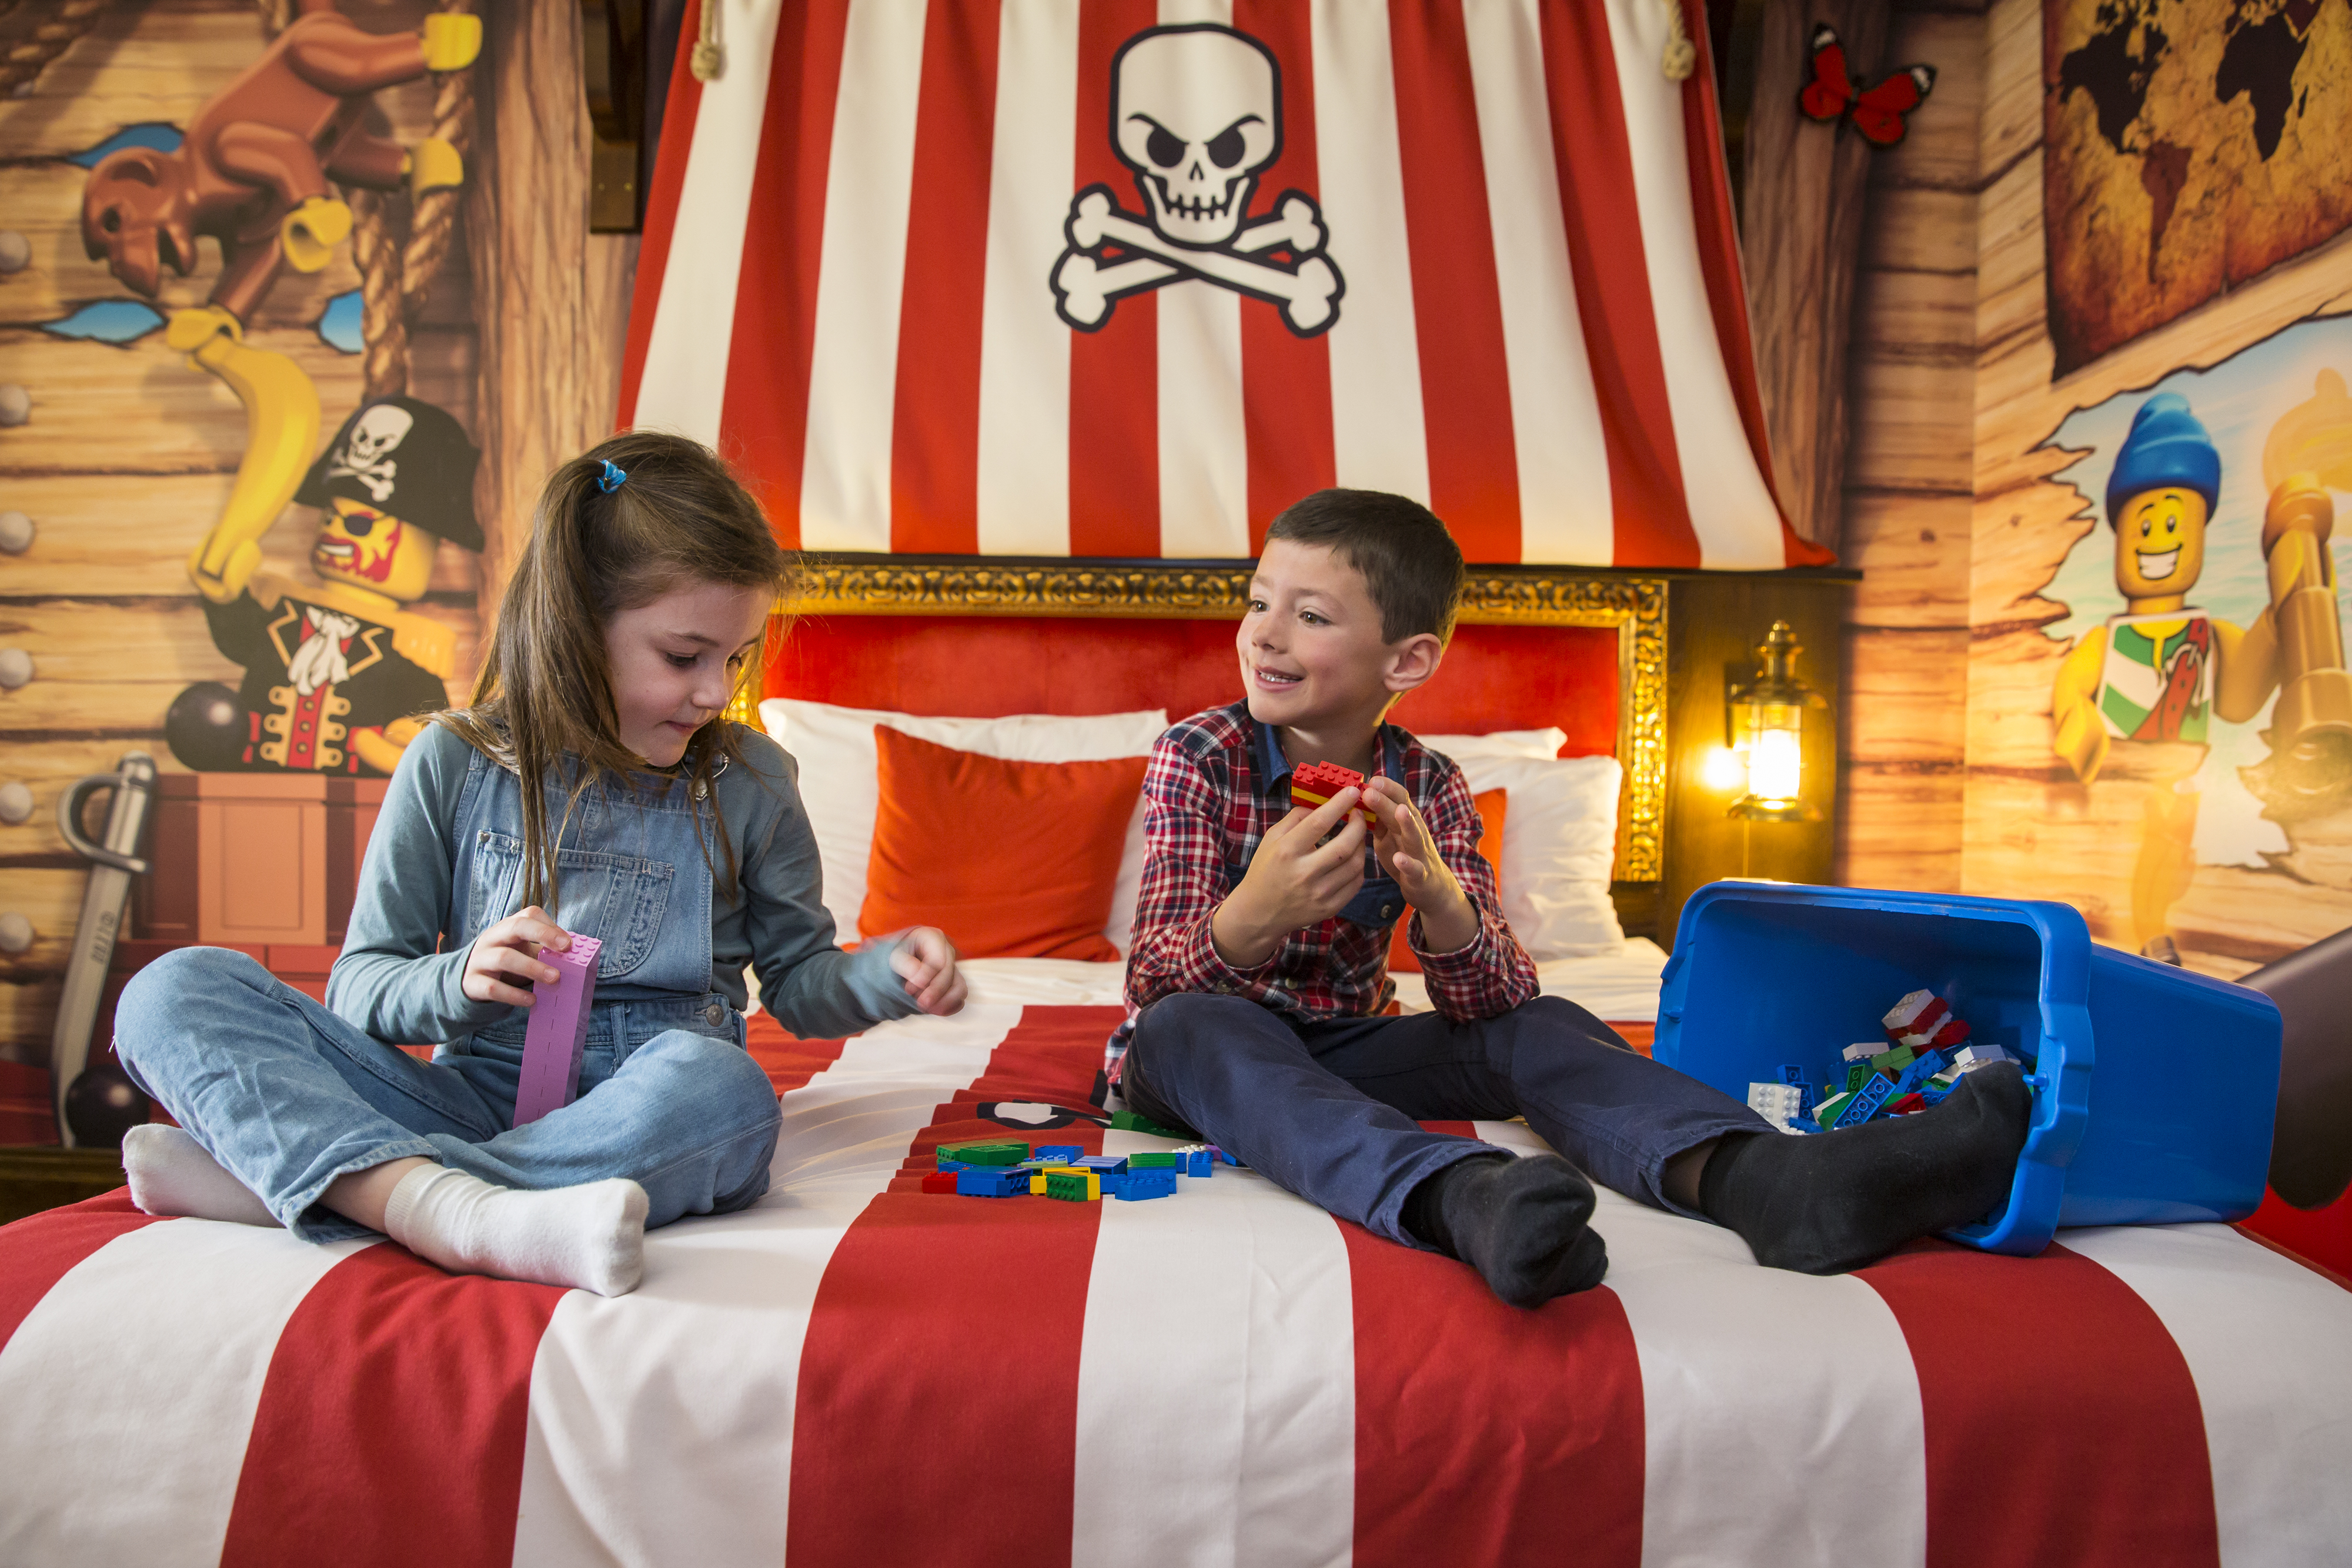 Pirate Room At LEGOLAND Windsor